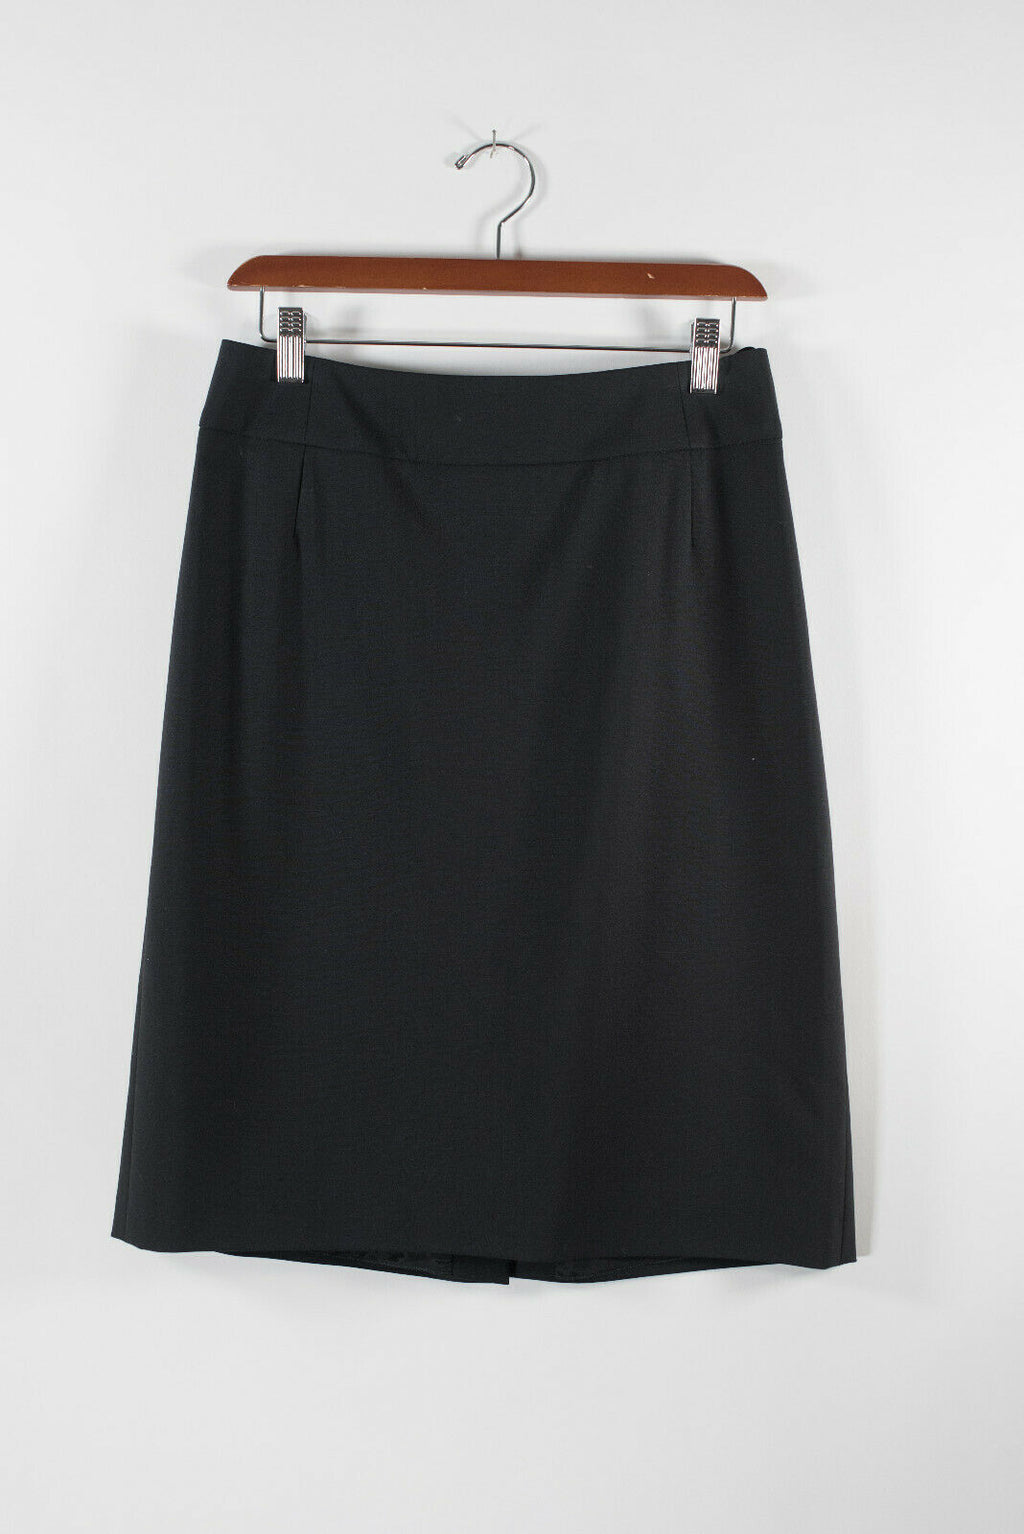 Hugo Boss Womens Size 8 Medium Black Skirt A-Line Solid Zip Knee Length Short